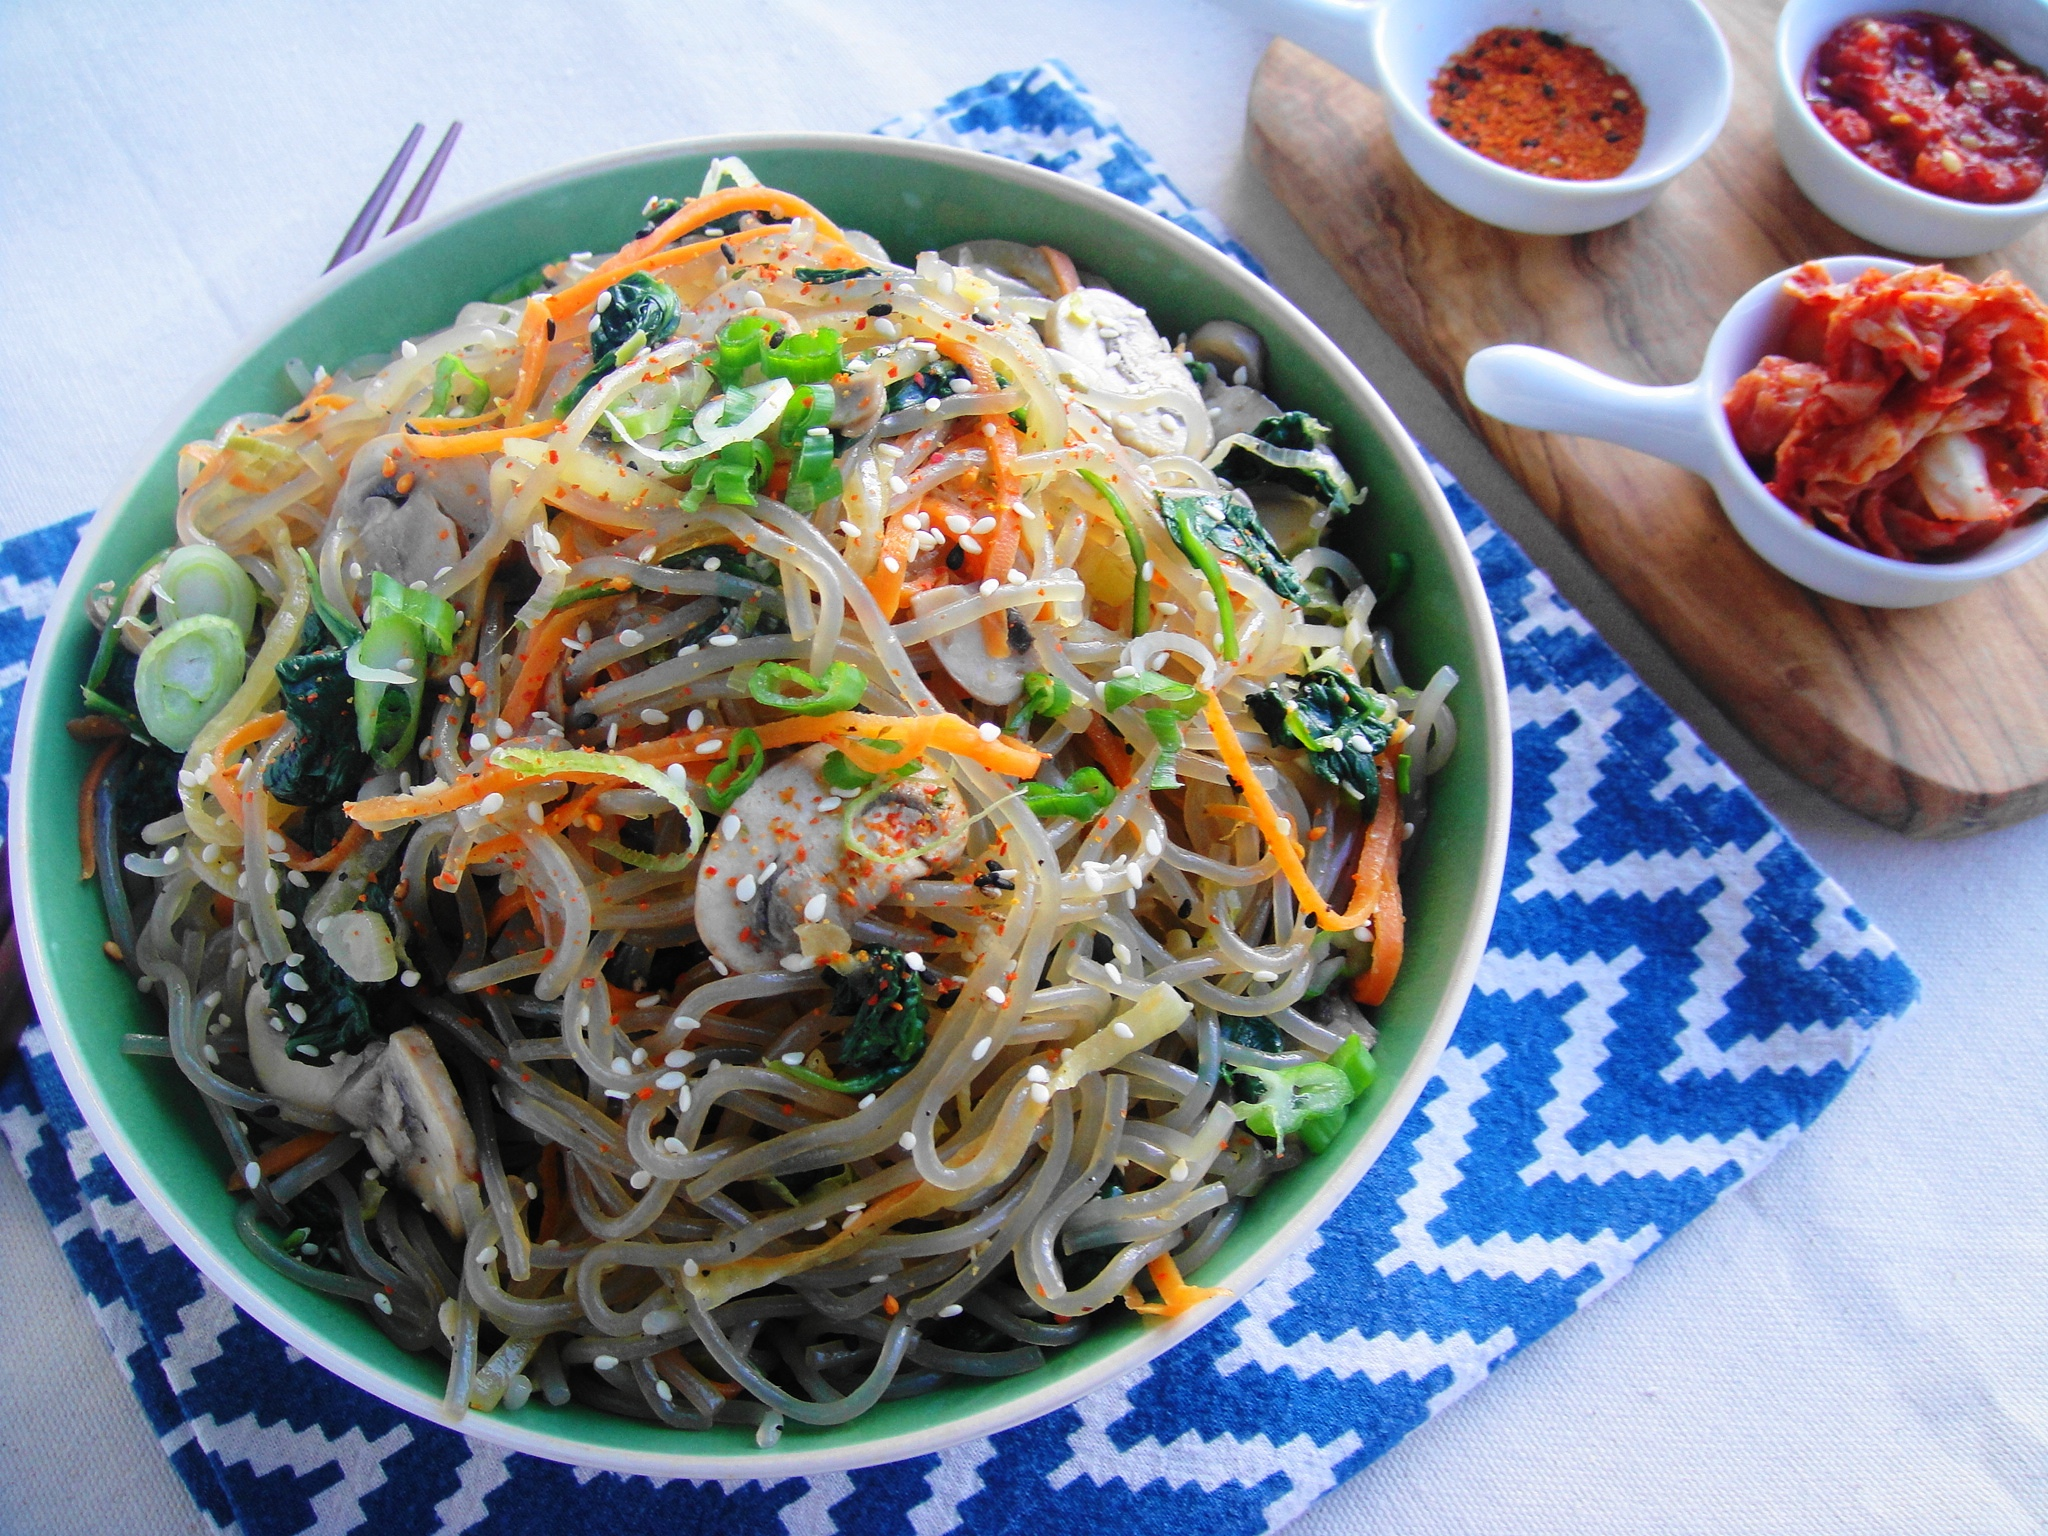 Japchae (Gluten-Free Korean Glass Noodles)